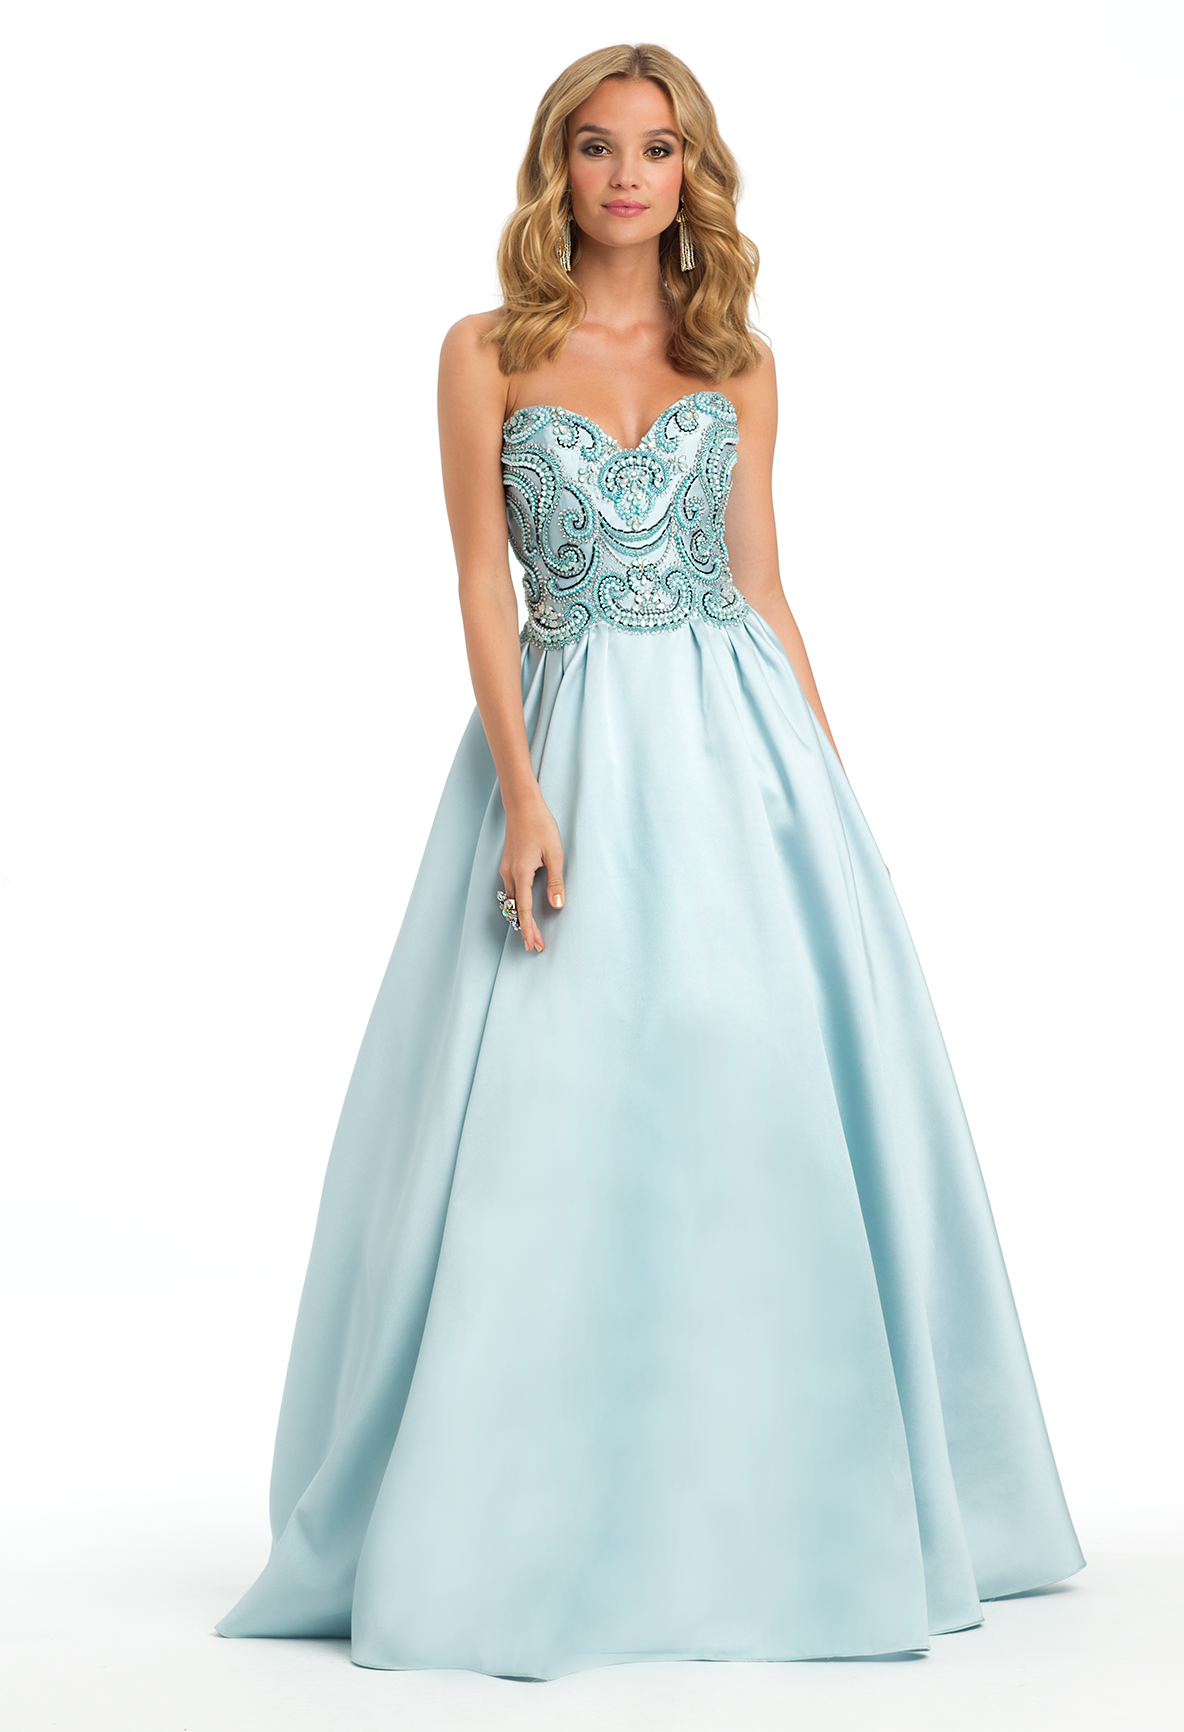 Look And Feel Like Cinderella In This Formal Evening Gown The